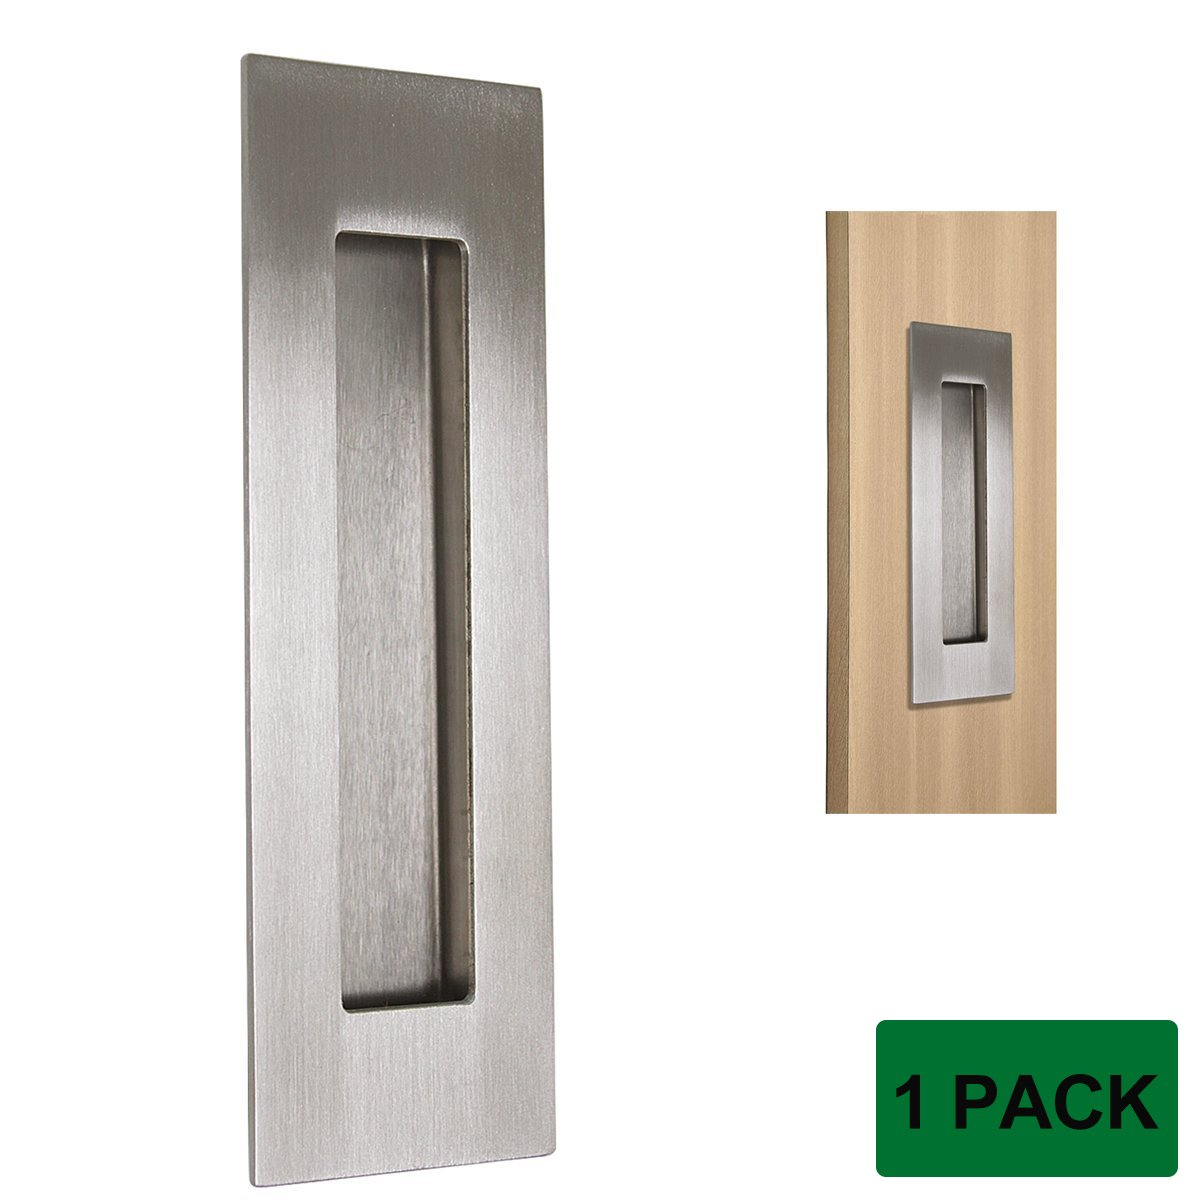 Probrico Stainless Steel Flush Pull, Recessed Cabinet Sliding Door Knobs Furniture Handles Concealed Screws 6 Inches Overall Length